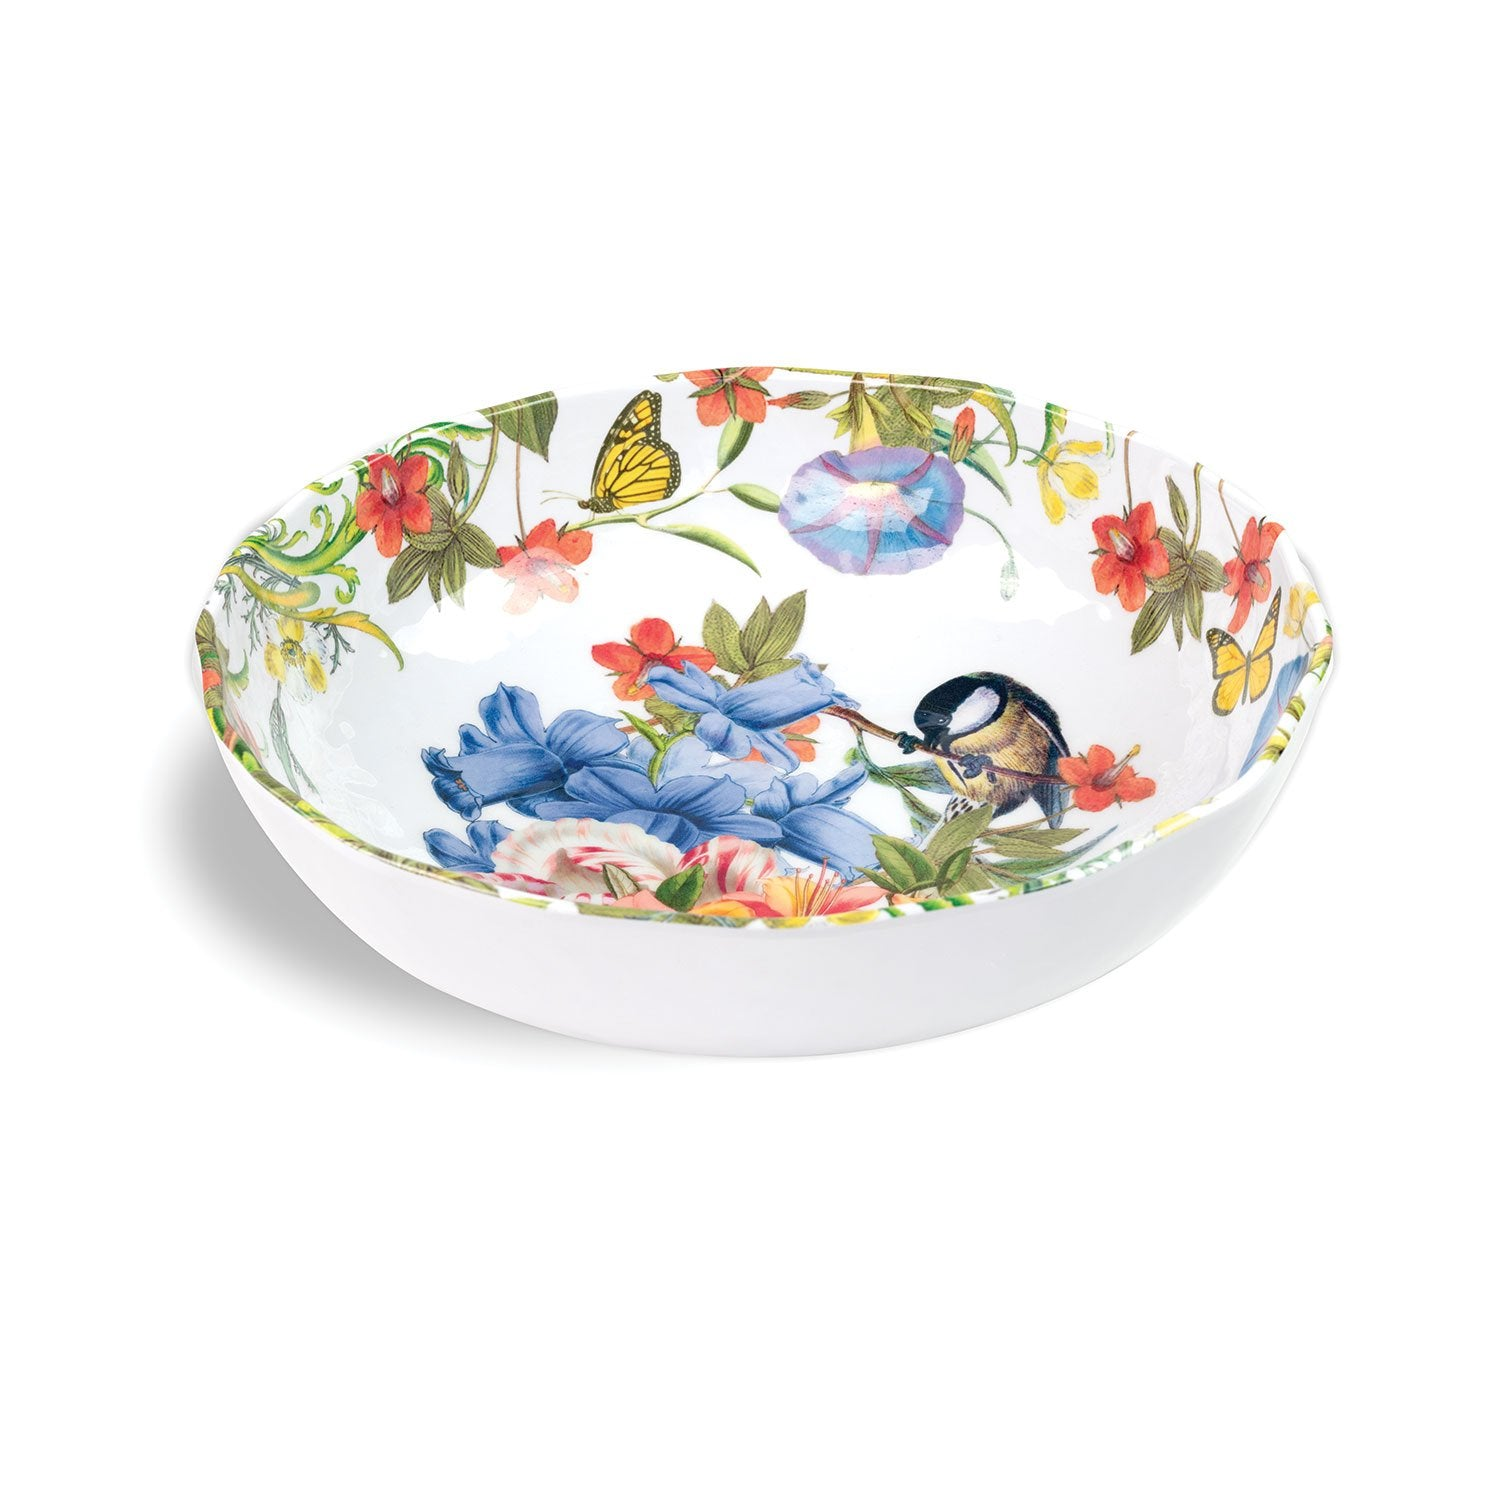 Summer Days Melamine Serveware Bistro Bowl